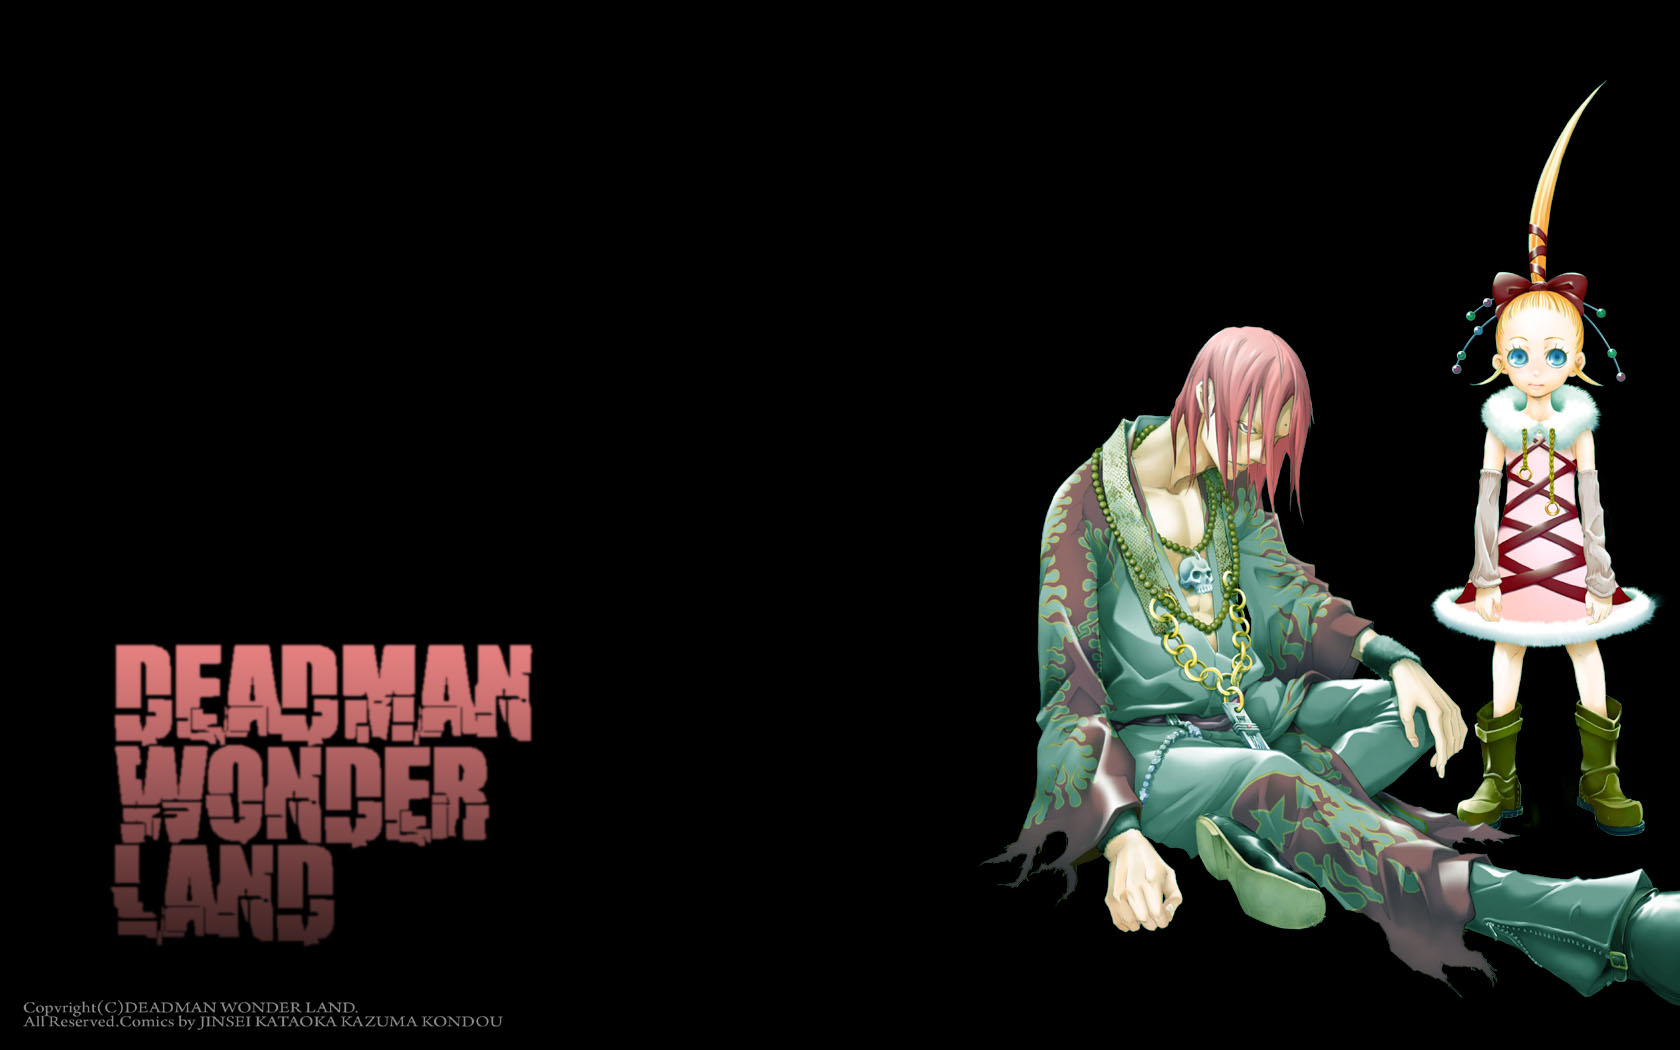 Full Body Girl Wallpaper Daida Hibana Deadman Wonderland Zerochan Anime Image Board